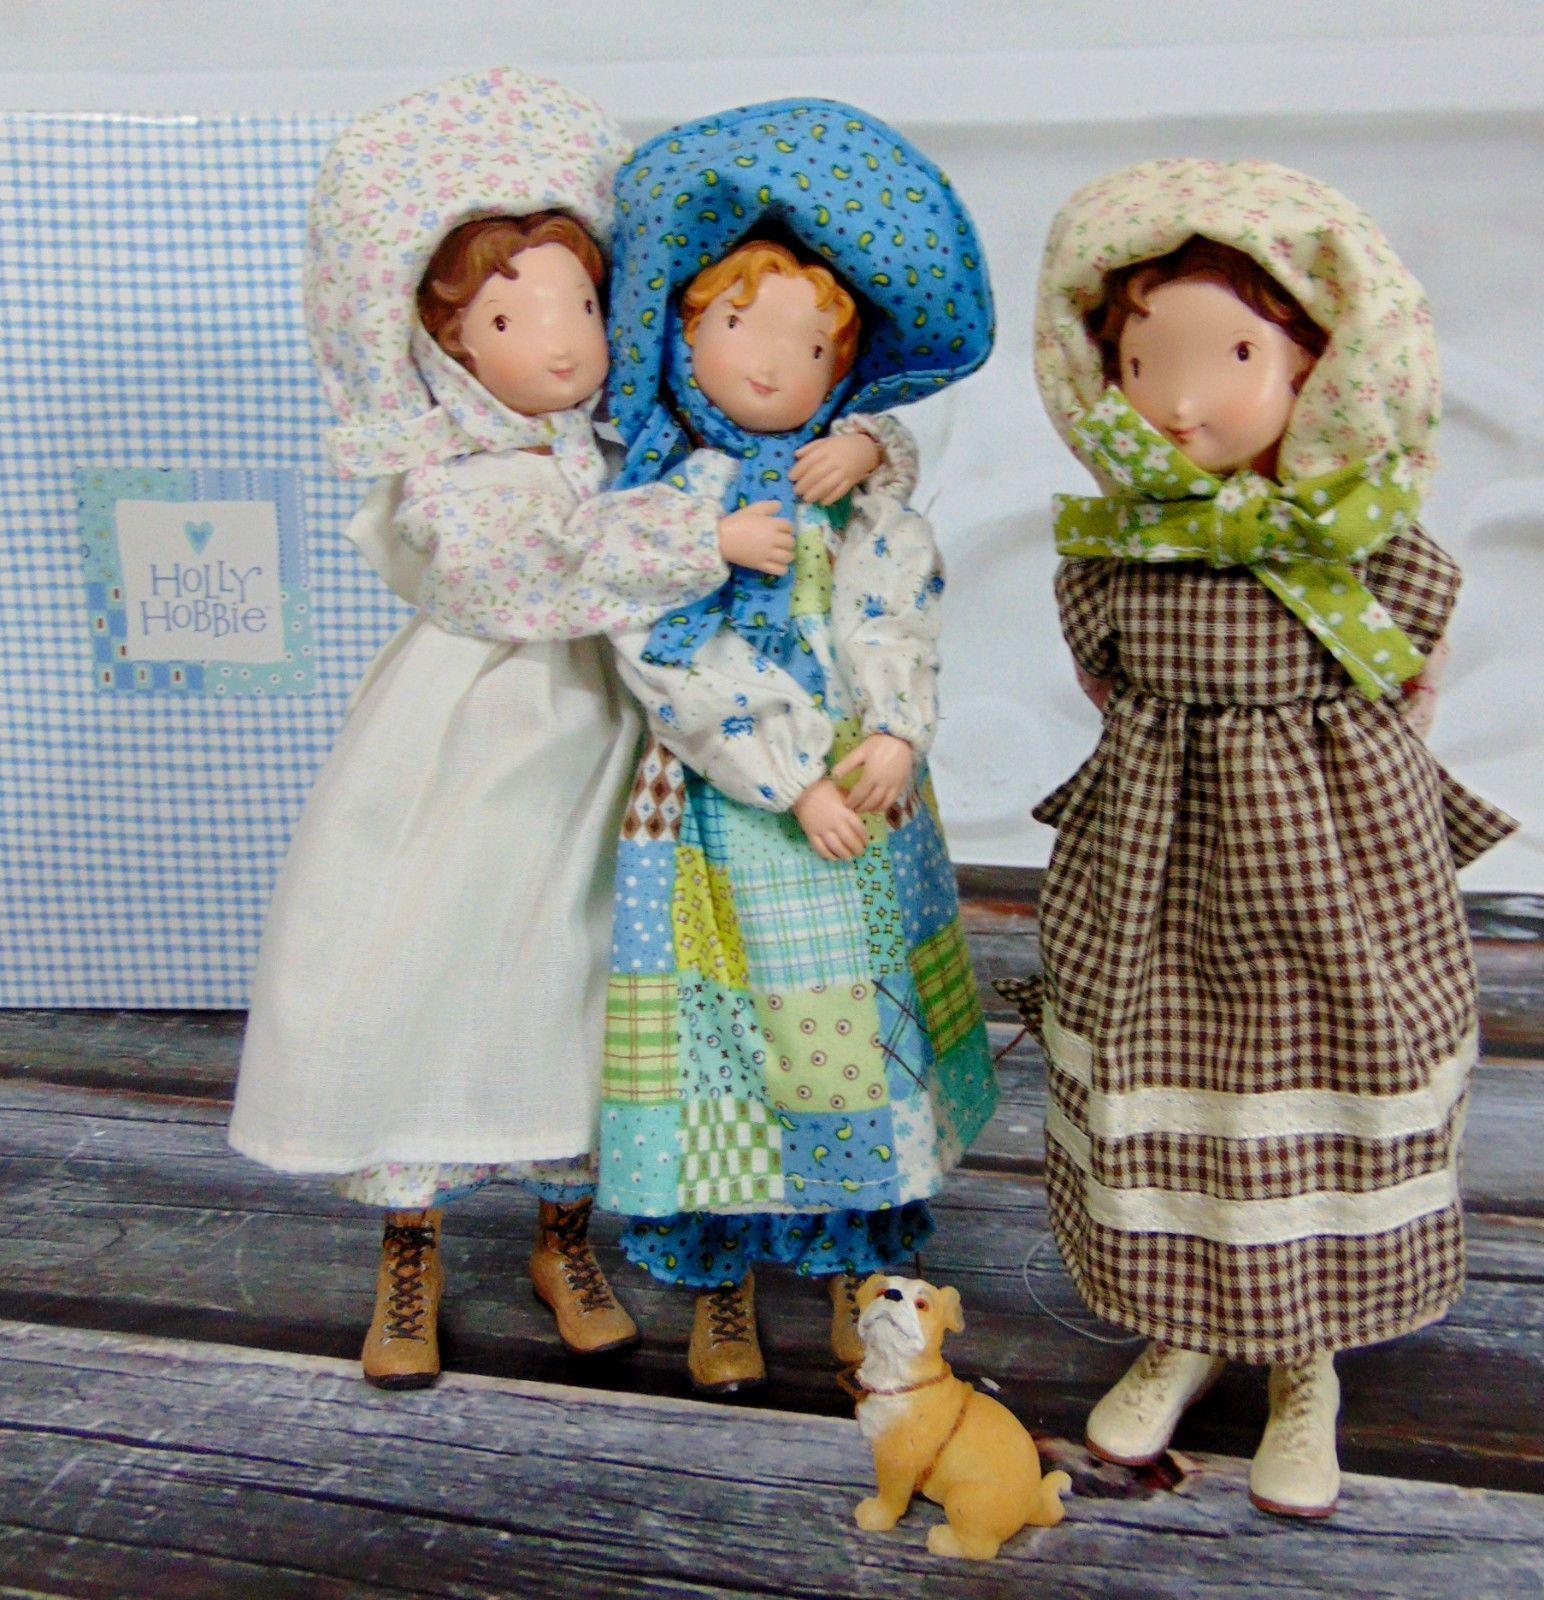 New set 3 holly hobbie carrie amy cloth resin figurine dolls new set 3 holly hobbie carrie amy cloth resin figurine dolls american greeting ebay reviewsmspy